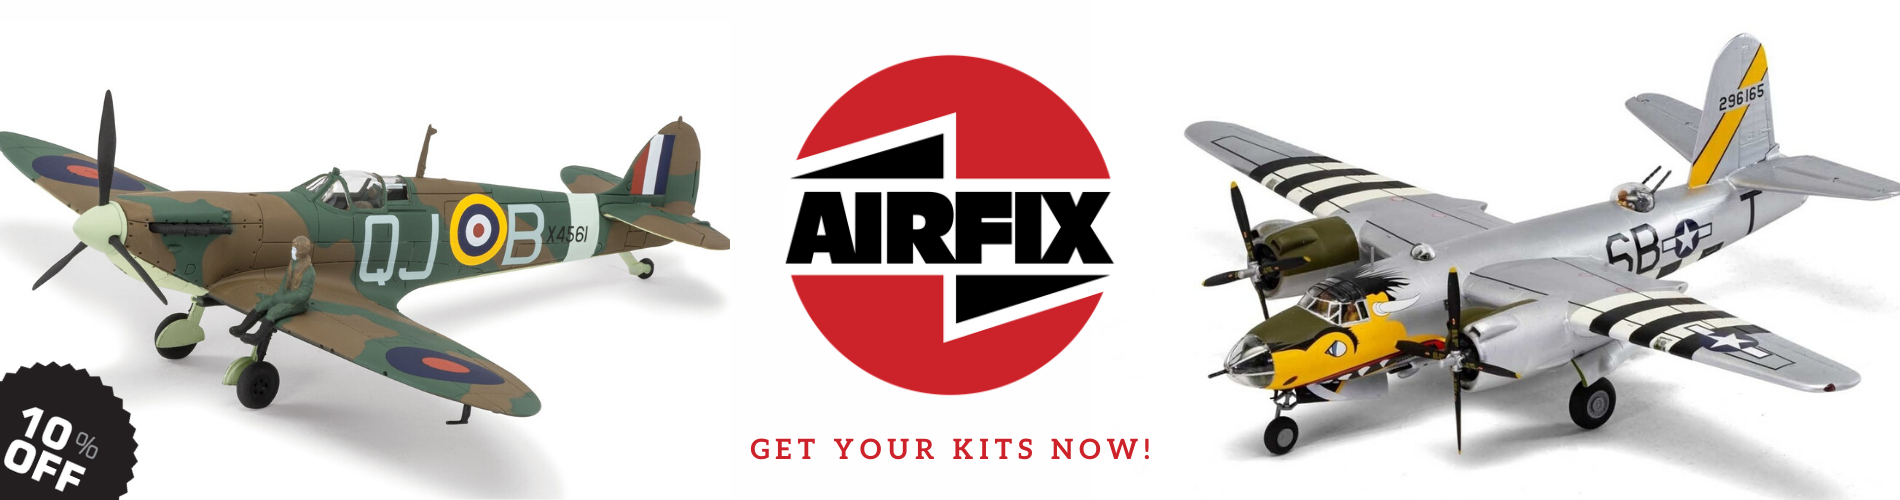 banner-ams-airfix.png